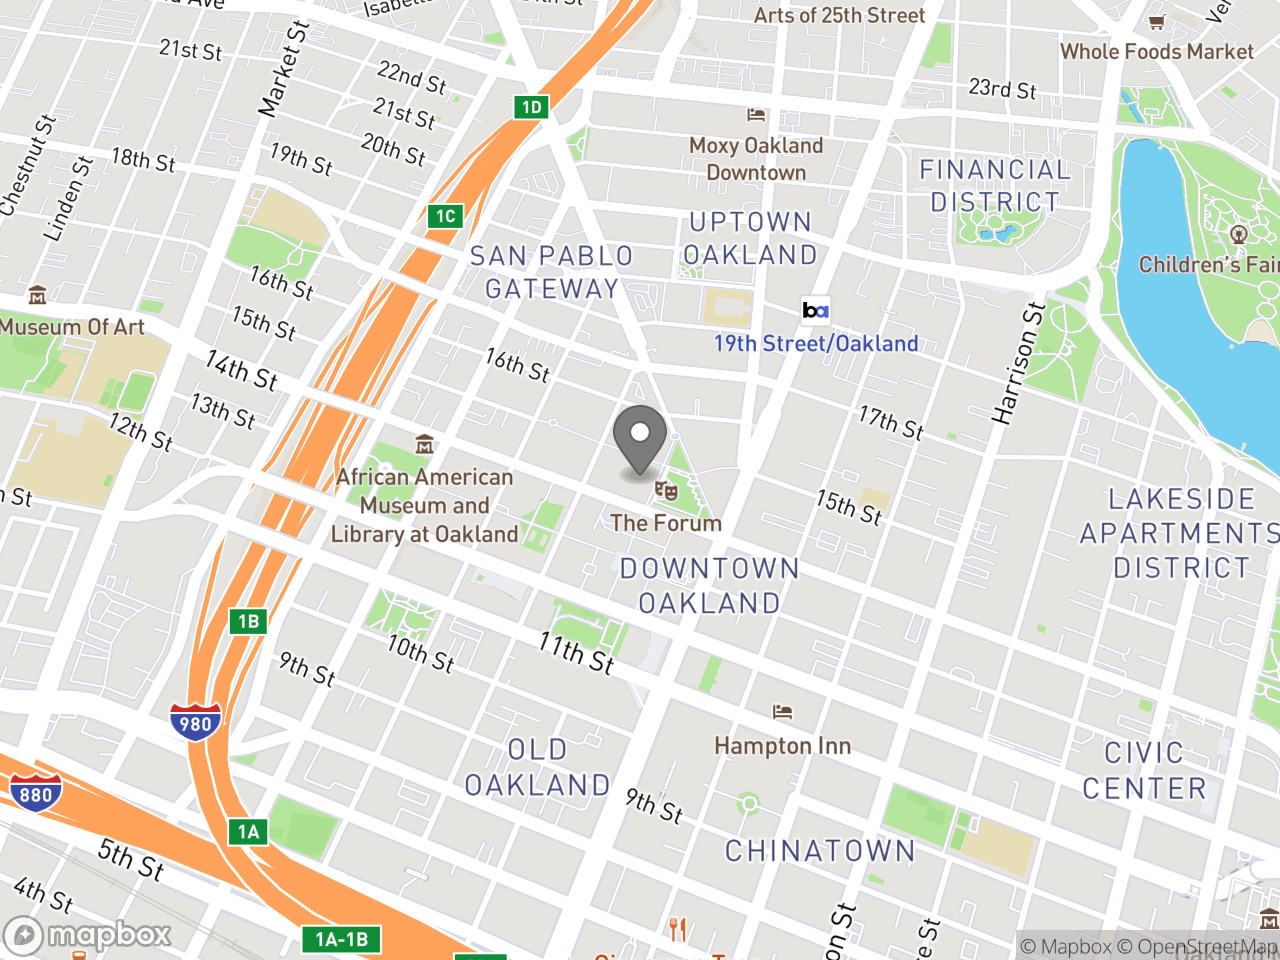 Map location for Rent Board Panel Meeting November 7, 2019, located at 1 Frank H. Ogawa Plaza in Oakland, CA 94612